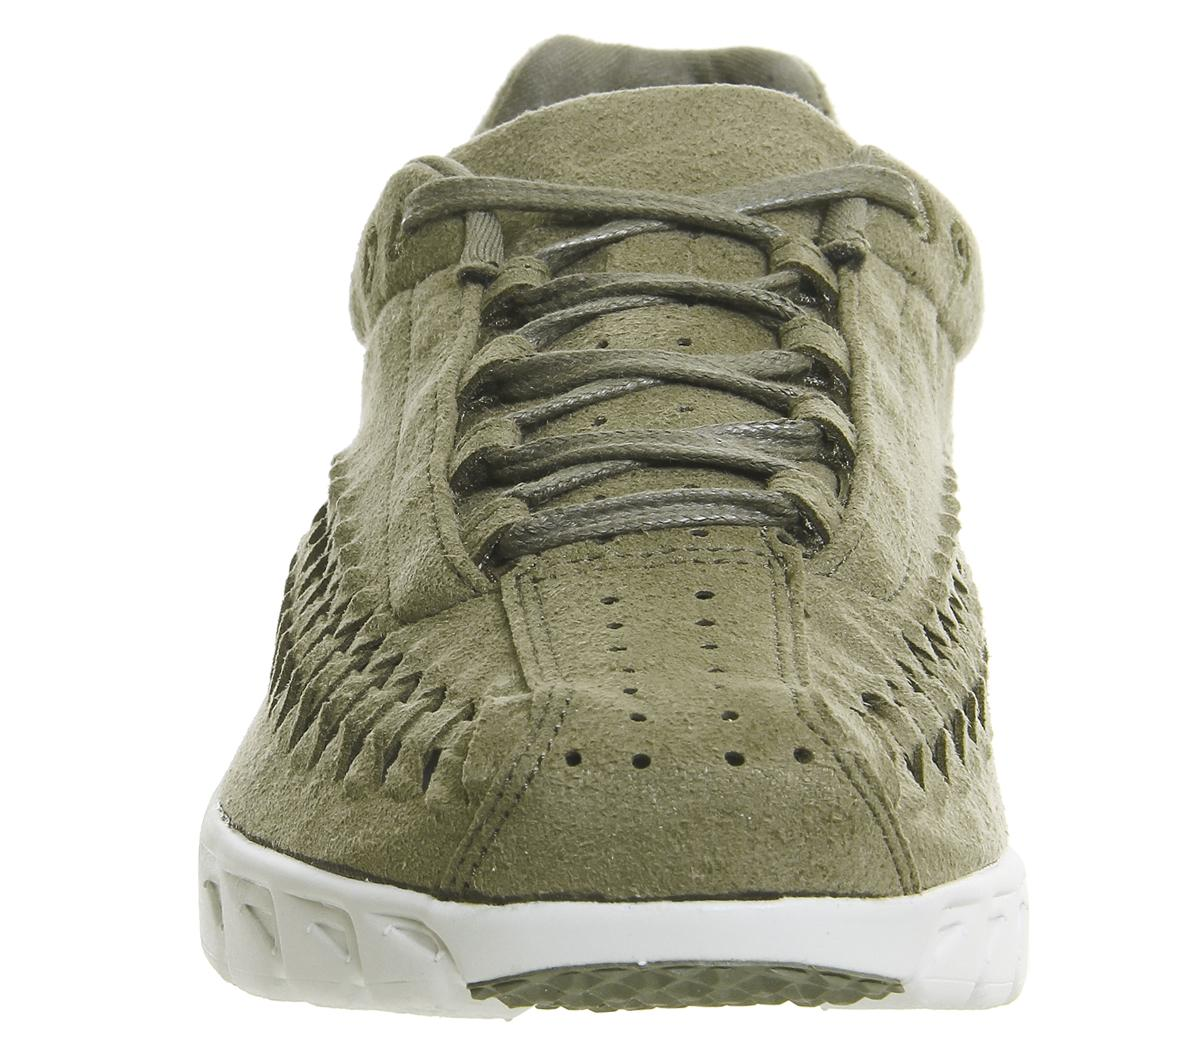 Nike Suede Mayfly Woven Trainers in Green for Men